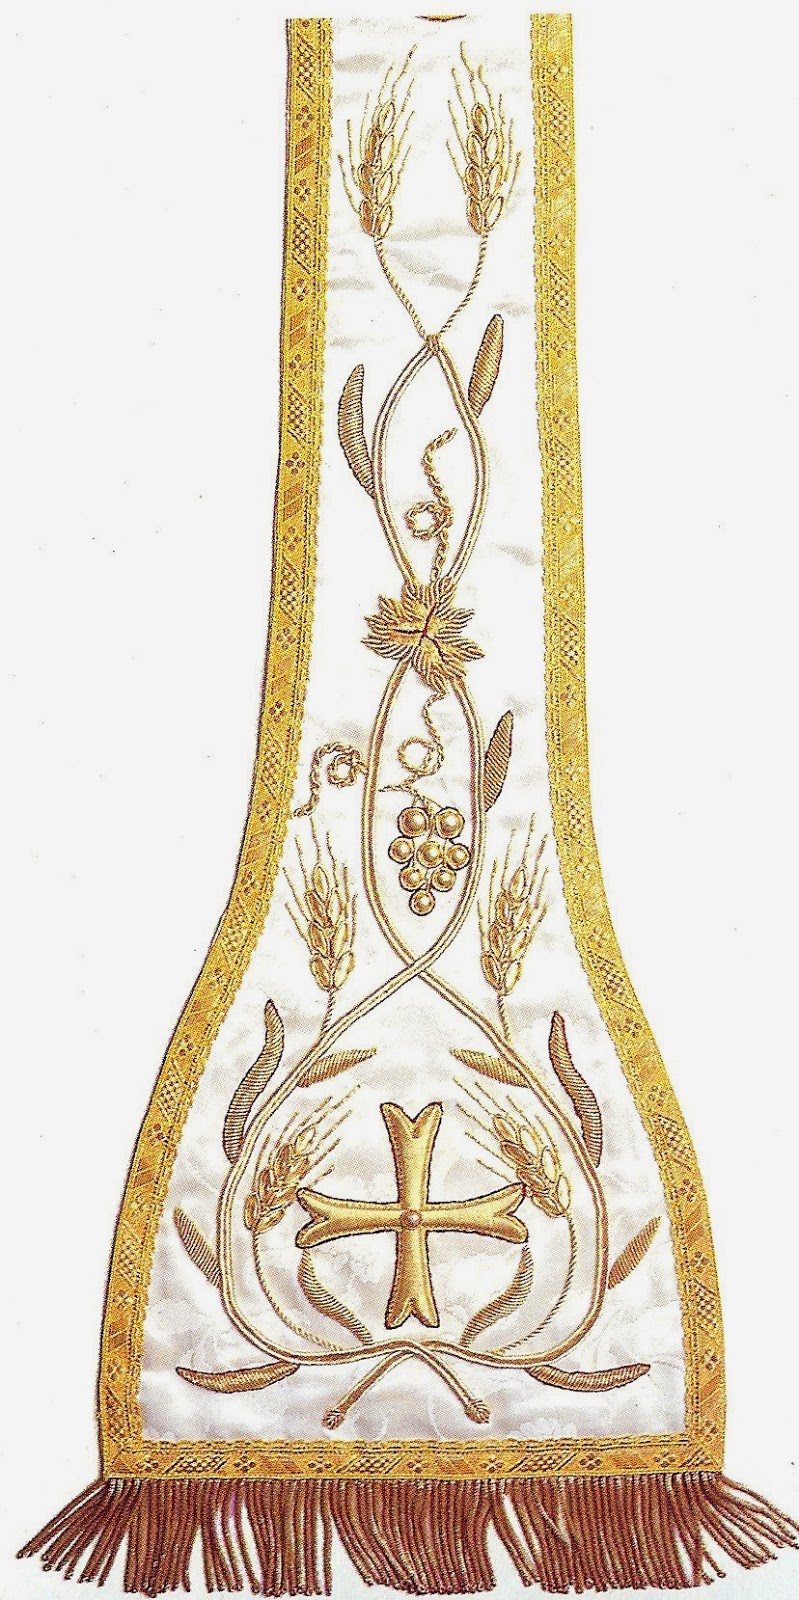 Heavily Embroidered With Heavy Gold Thread In Traditional Wheat (loaves)  And Grapes (wine) Symbols Collection Sisters Of St Joseph, North Sydney